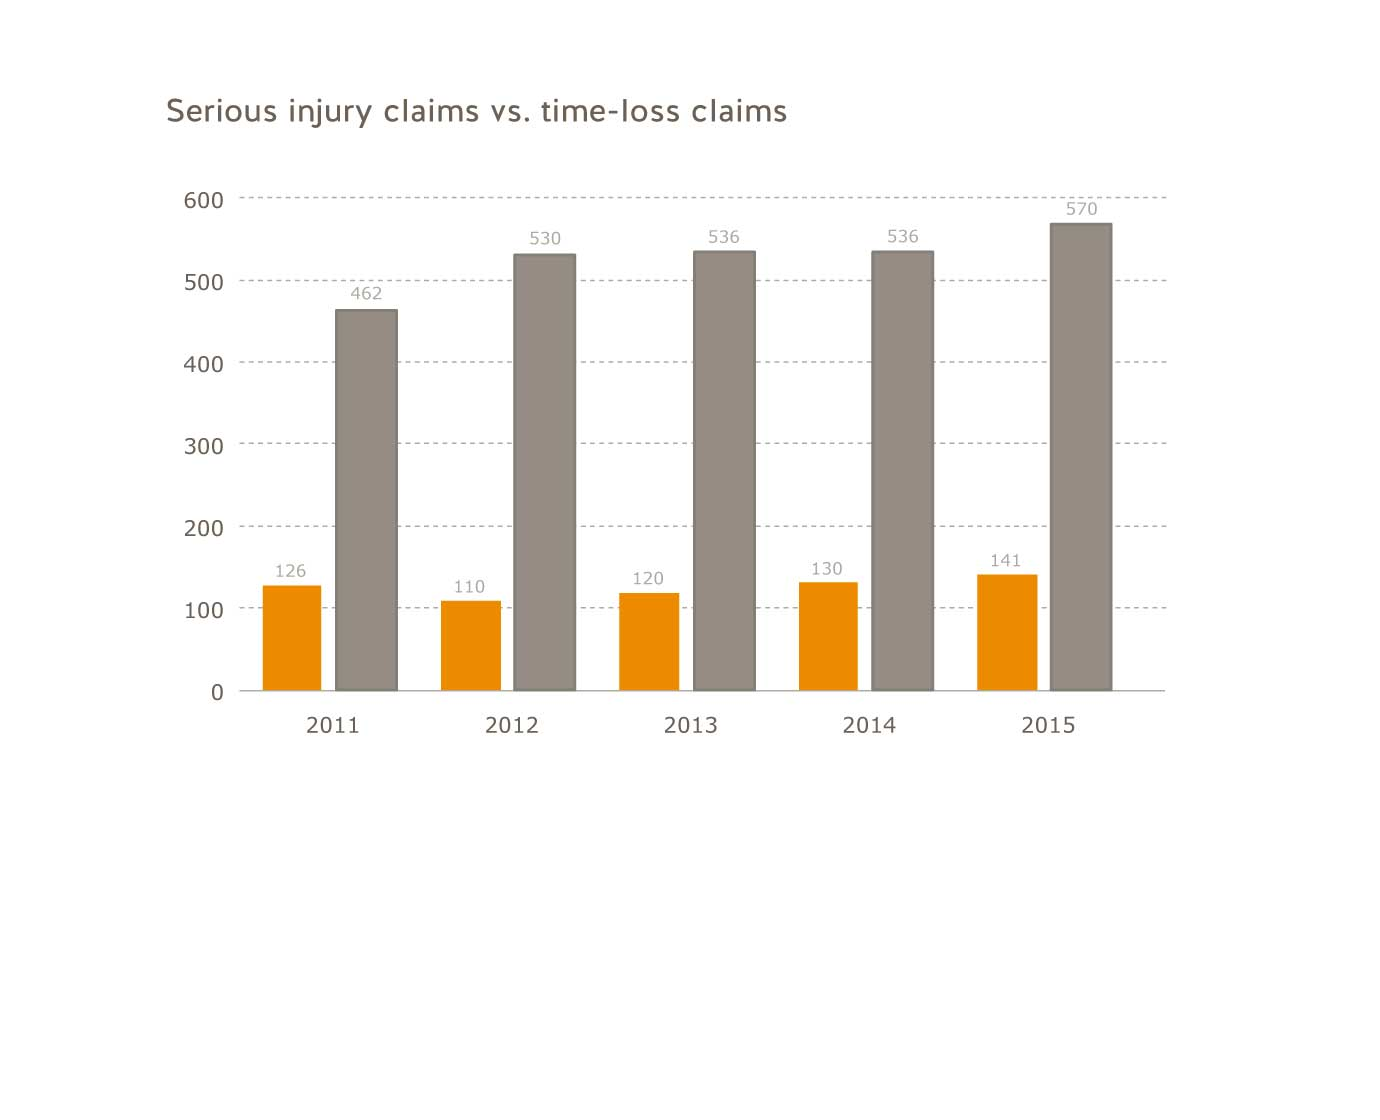 Serious injury claims versus time-loss claims for the years 2011 to 2015. 2011: agriculture sector=126, all B.C.=462; 2012: agriculture sector=110, all B.C.=530; 2013: agriculture sector=120, all B.C.=536; 2014: agriculture sector=130, all B.C.=536; 2015: agriculture sector=141, all B.C=570